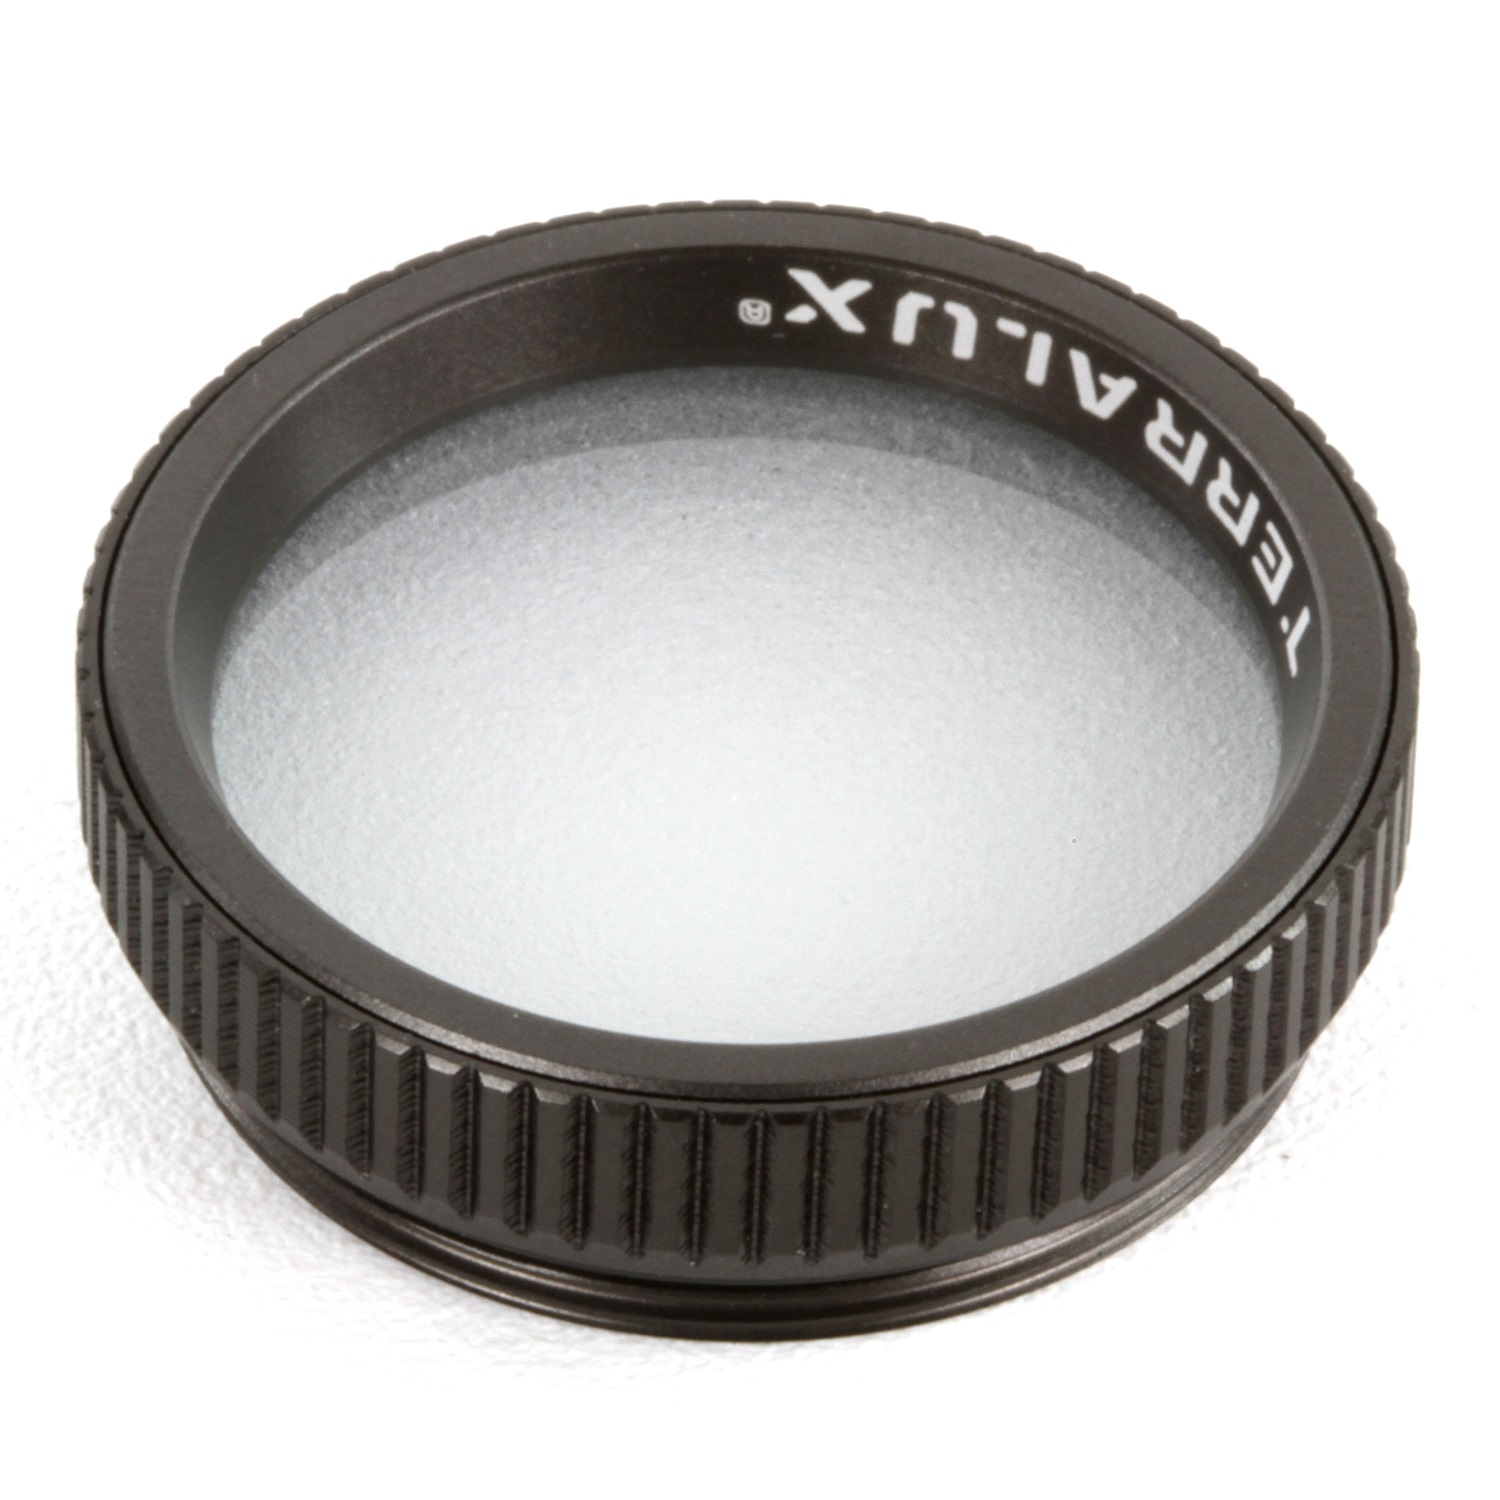 TerraLUX White Flashlight Filter Fits TT-5 and TDR-2